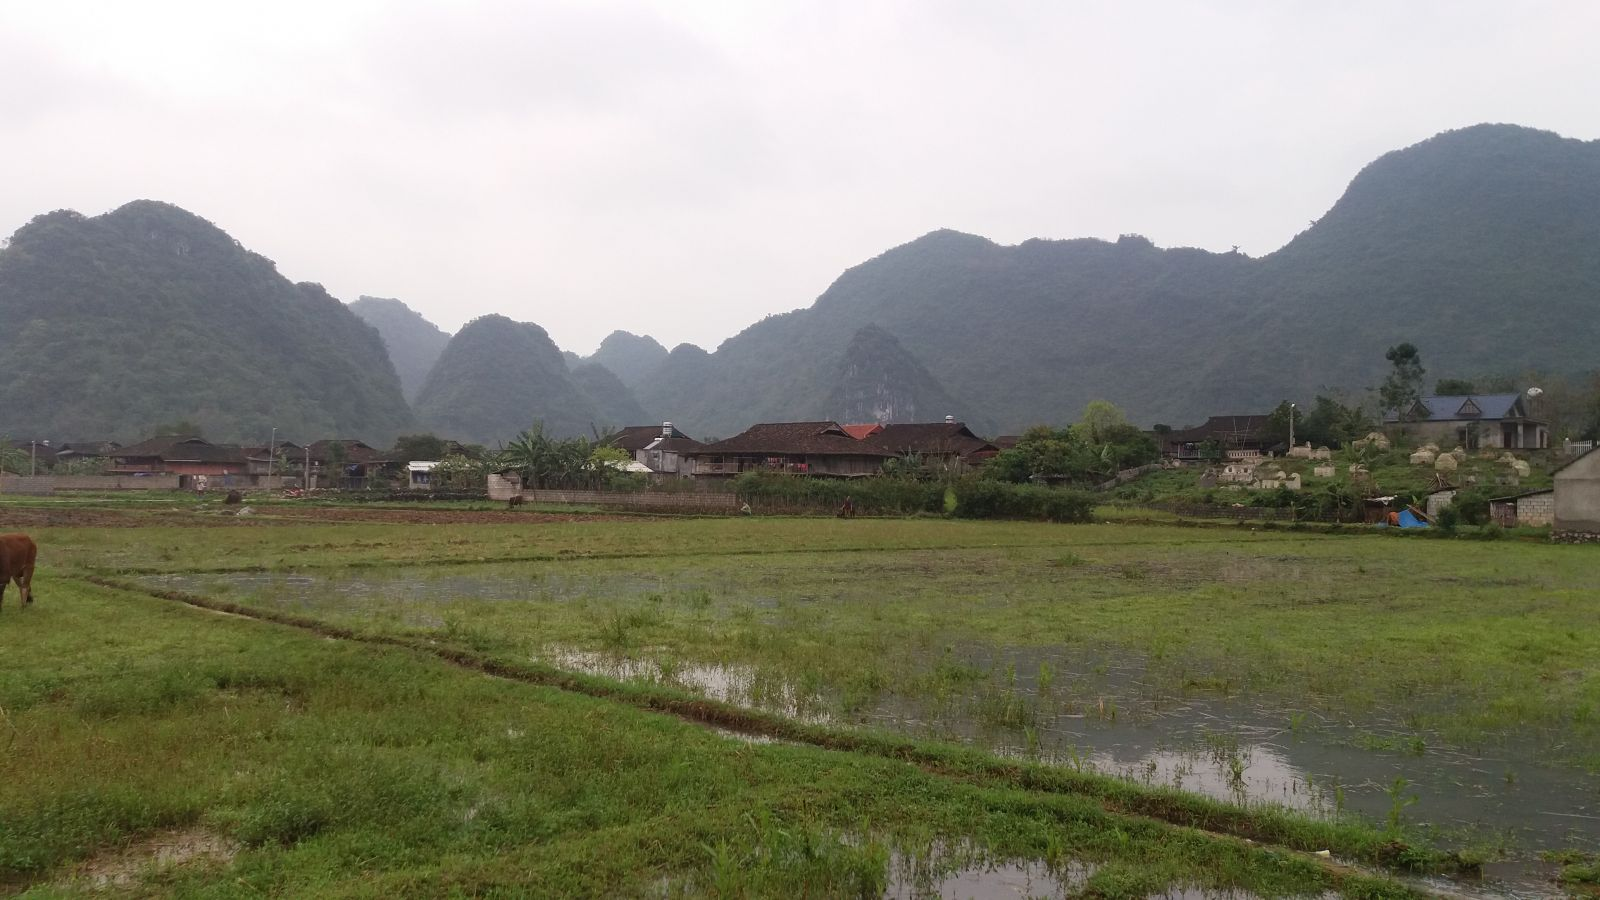 Bac Son travel experience in Quynh Son village